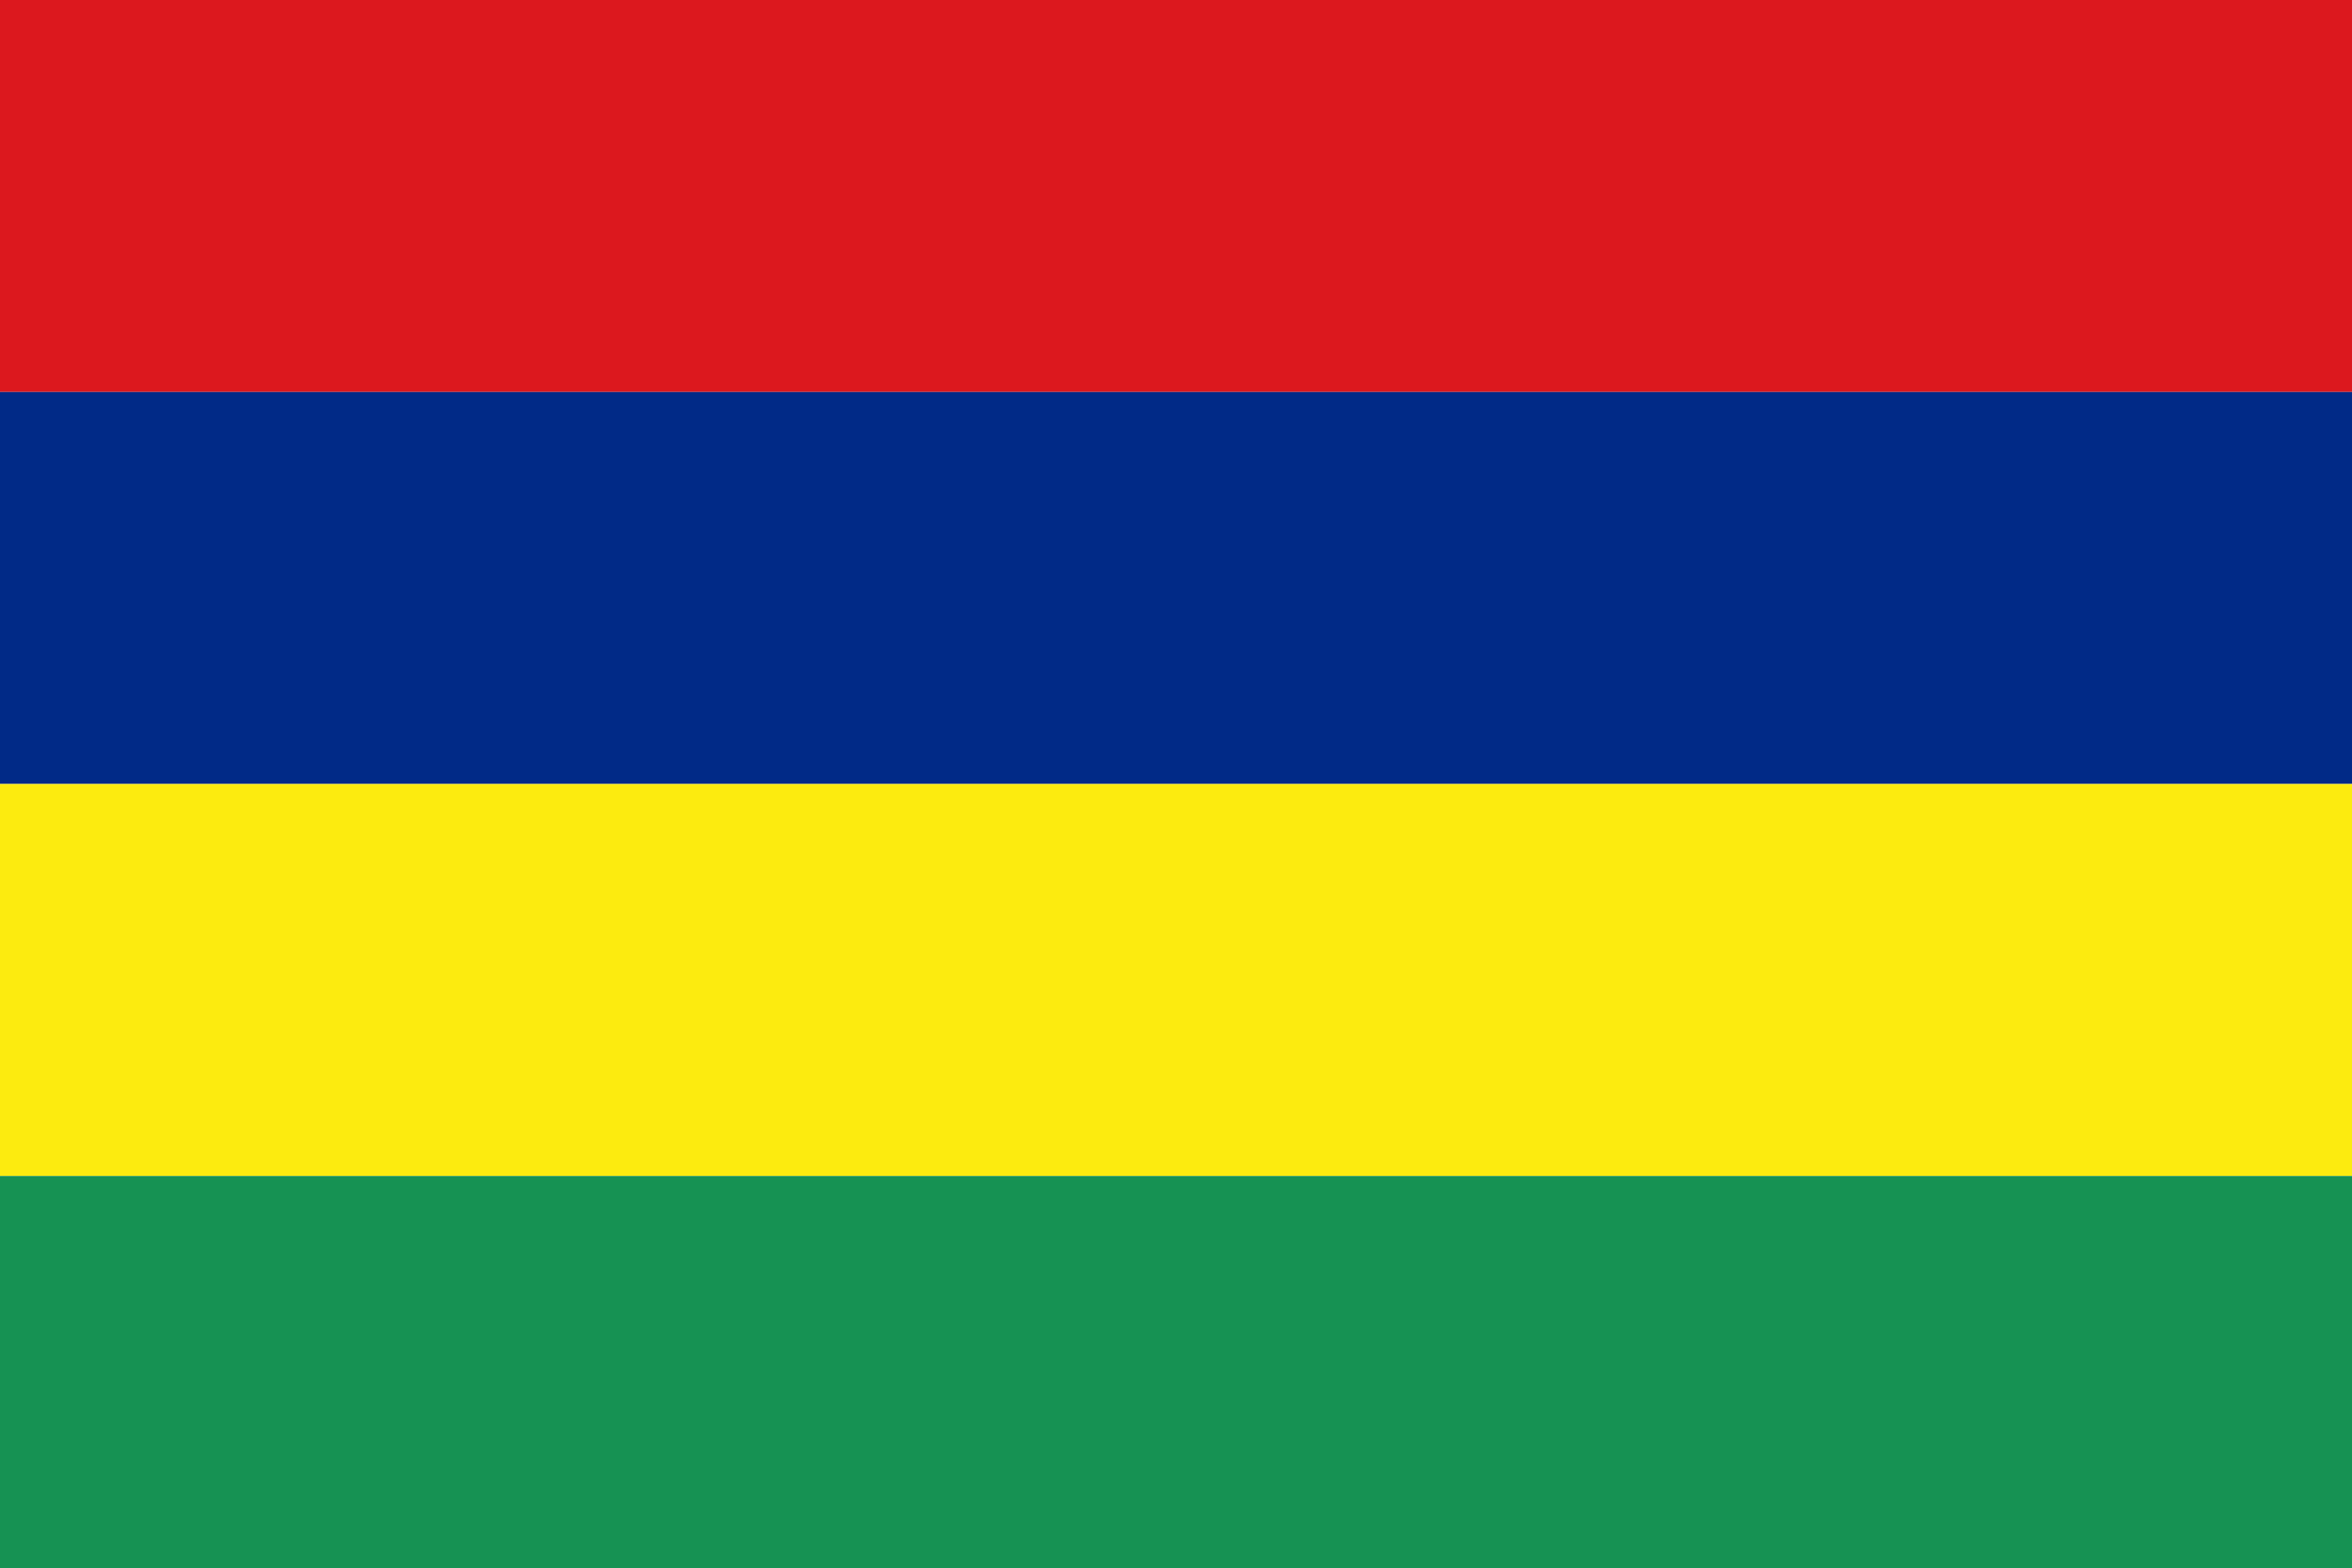 EMBASSY AND CONSULATE OF MAURITIUS